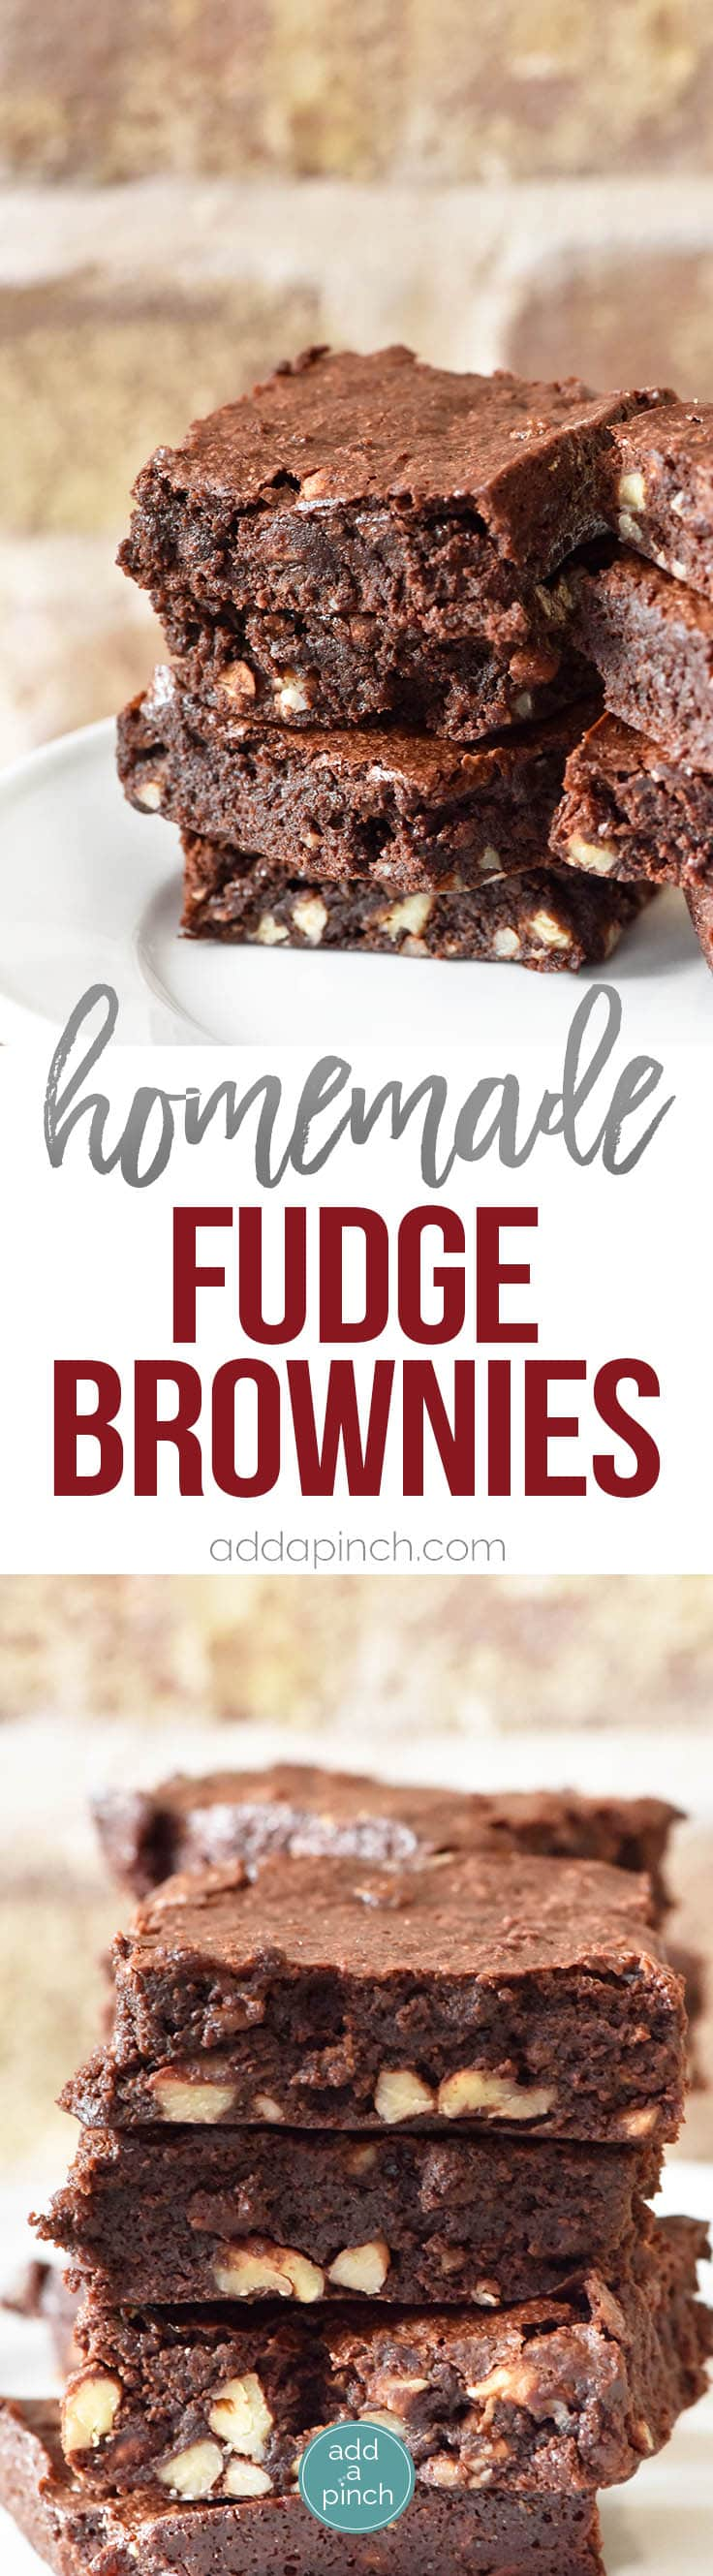 Fudge Brownies Recipe - Fudge brownies are a favorite chocolate dessert and this recipe makes decadent, scrumptious fudge brownies from scratch. // addapinch.com